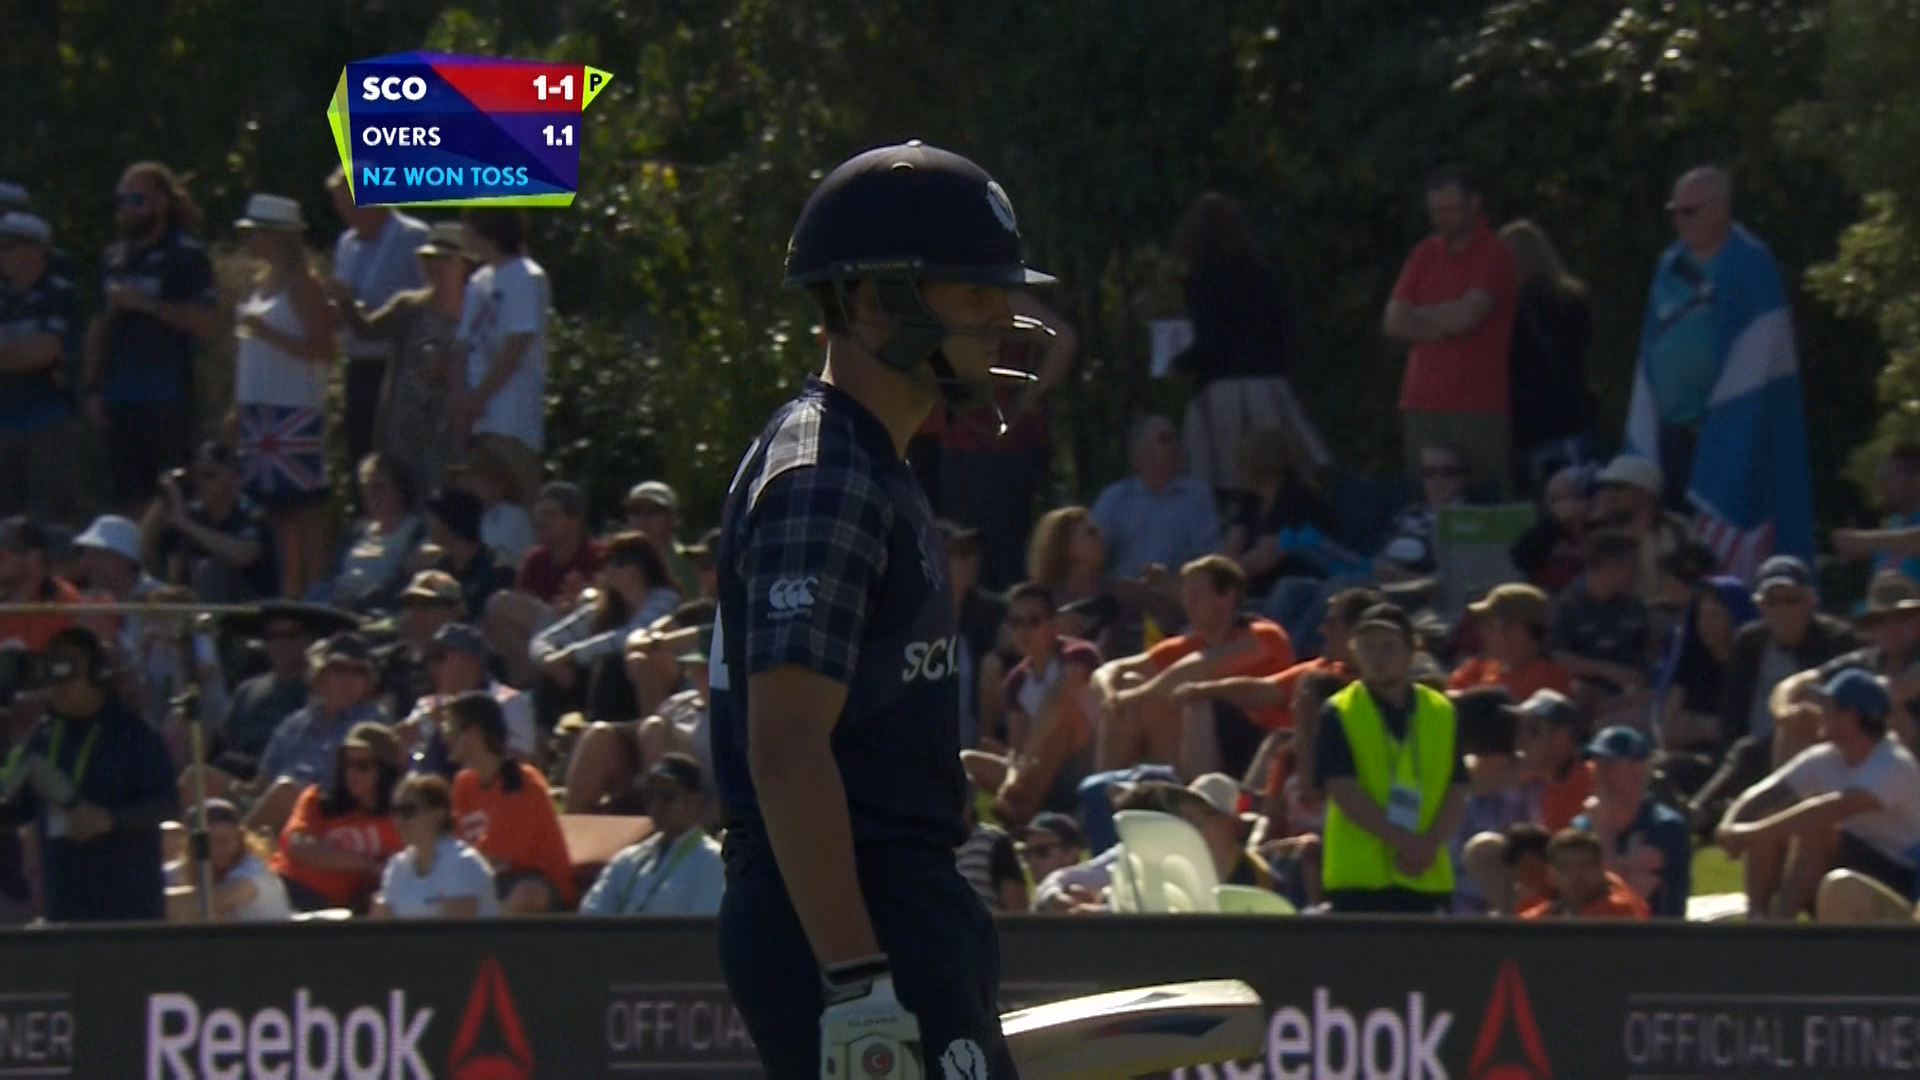 Calum Macleod wicket – NZ vs SCO